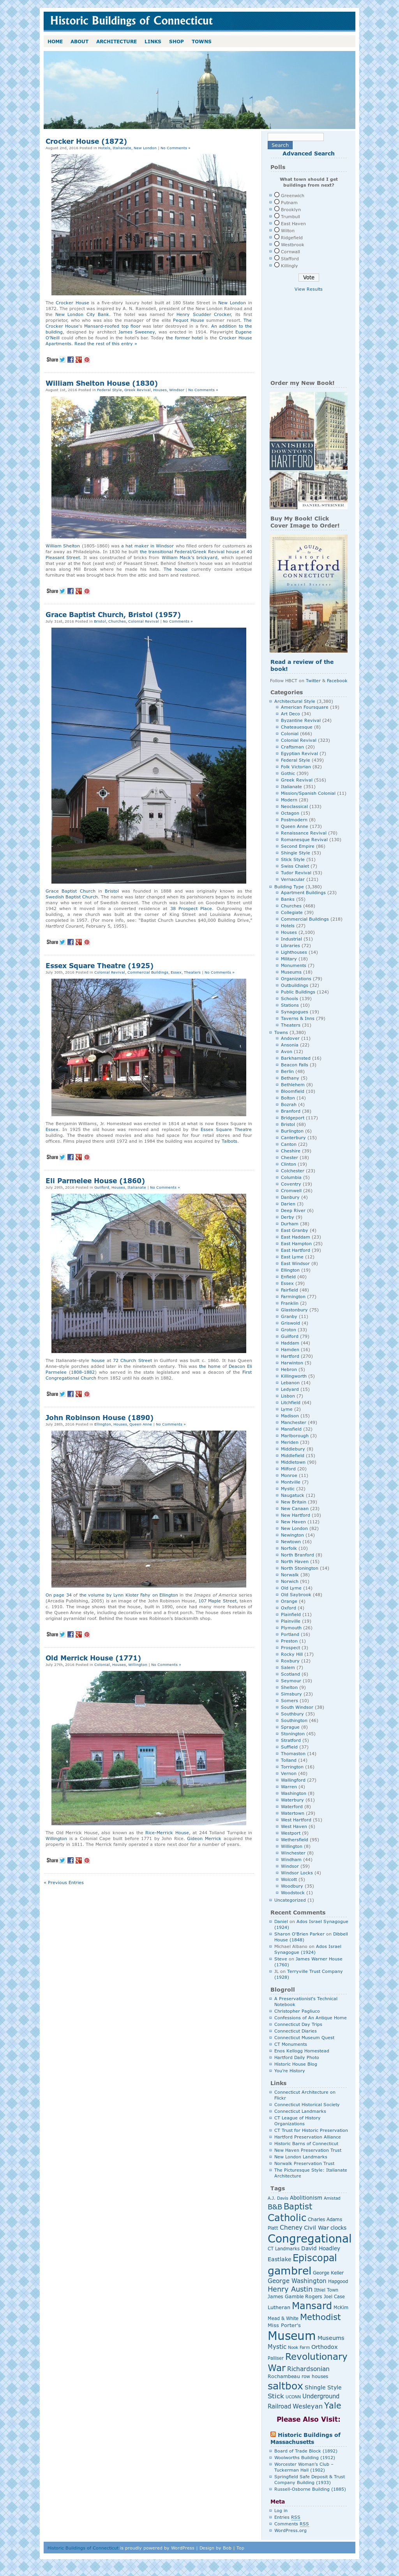 Historic Buildings Of Connecticut Competitors, Revenue and